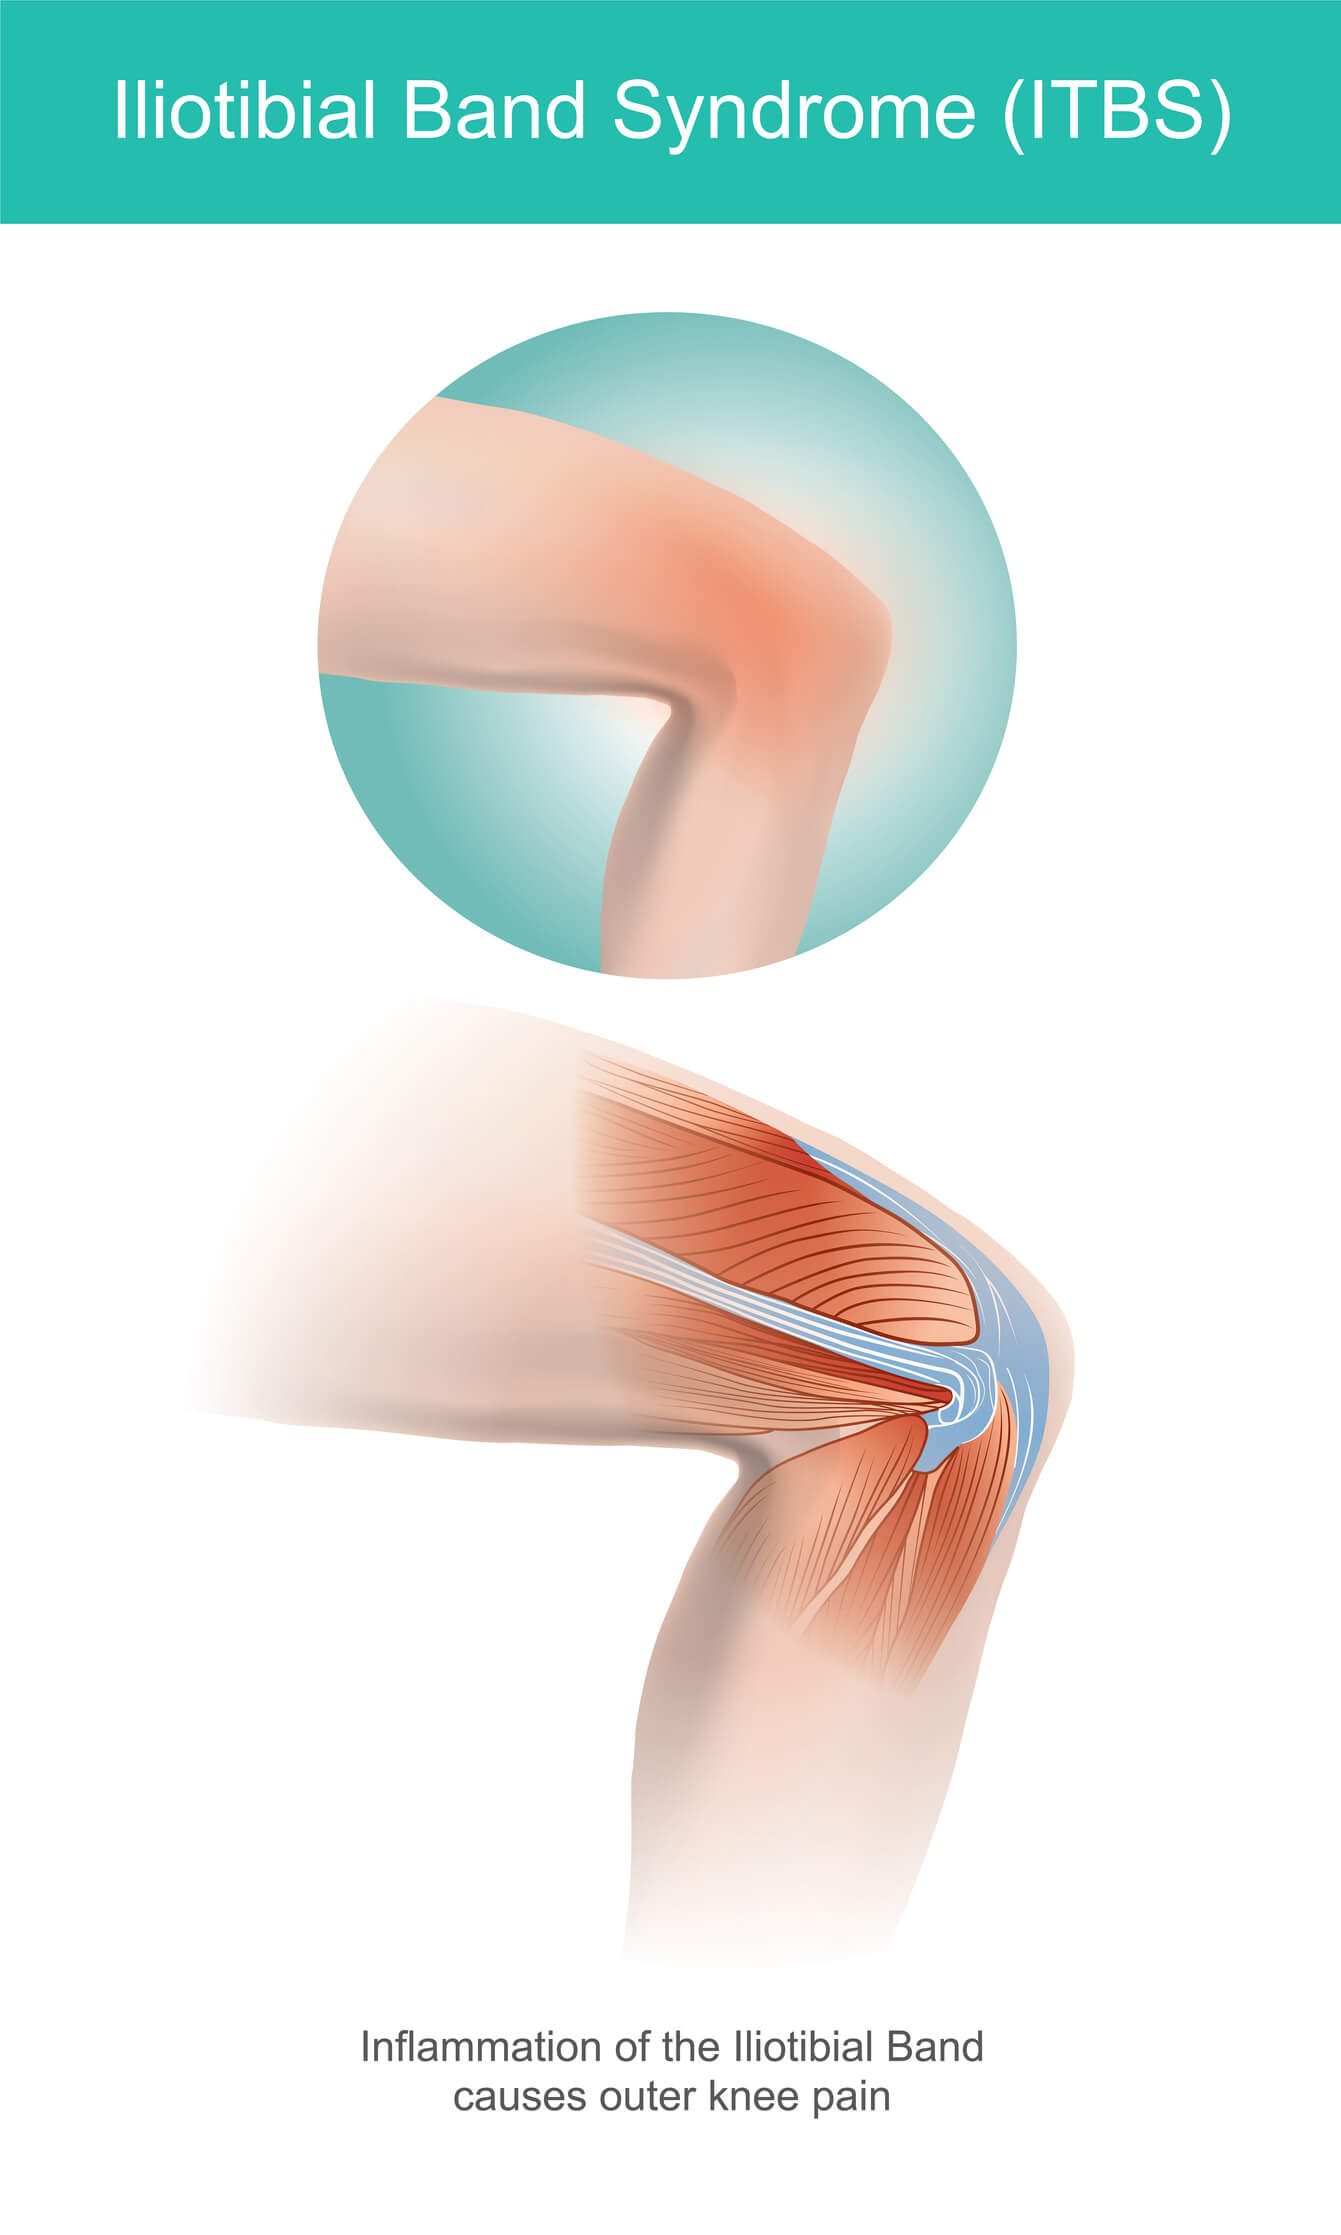 Image showing the position of the iliotibial band in the anatomy of the knee and leg, and how it band syndrome develops.